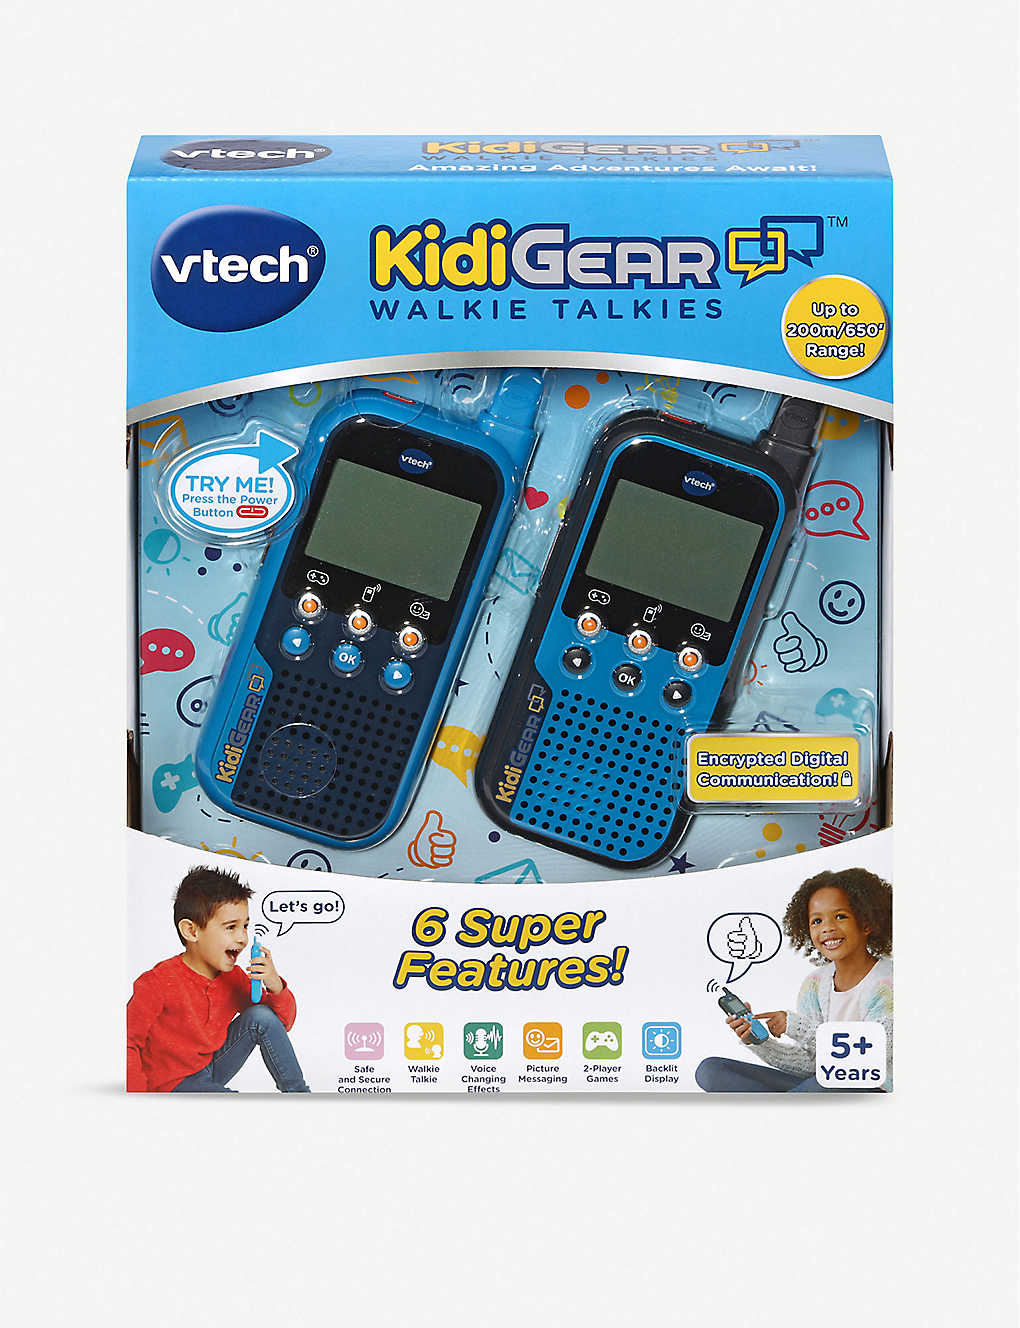 VTECH: KidiGear walkie-talkies